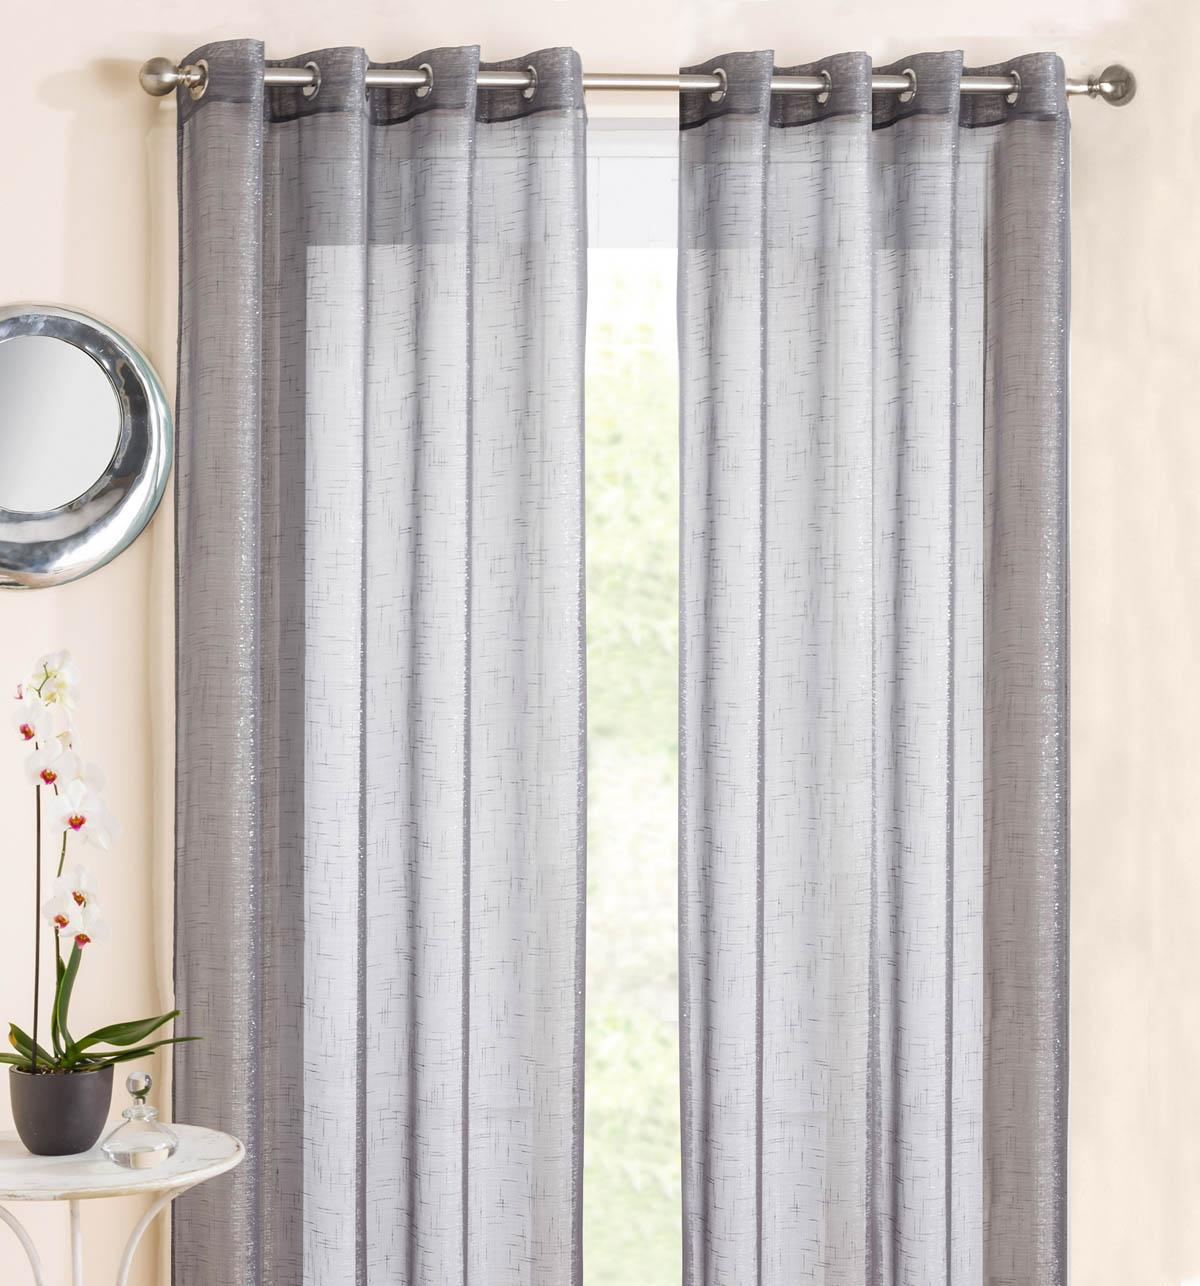 grey bedroom curtains | great value window curtains | terrys fabrics